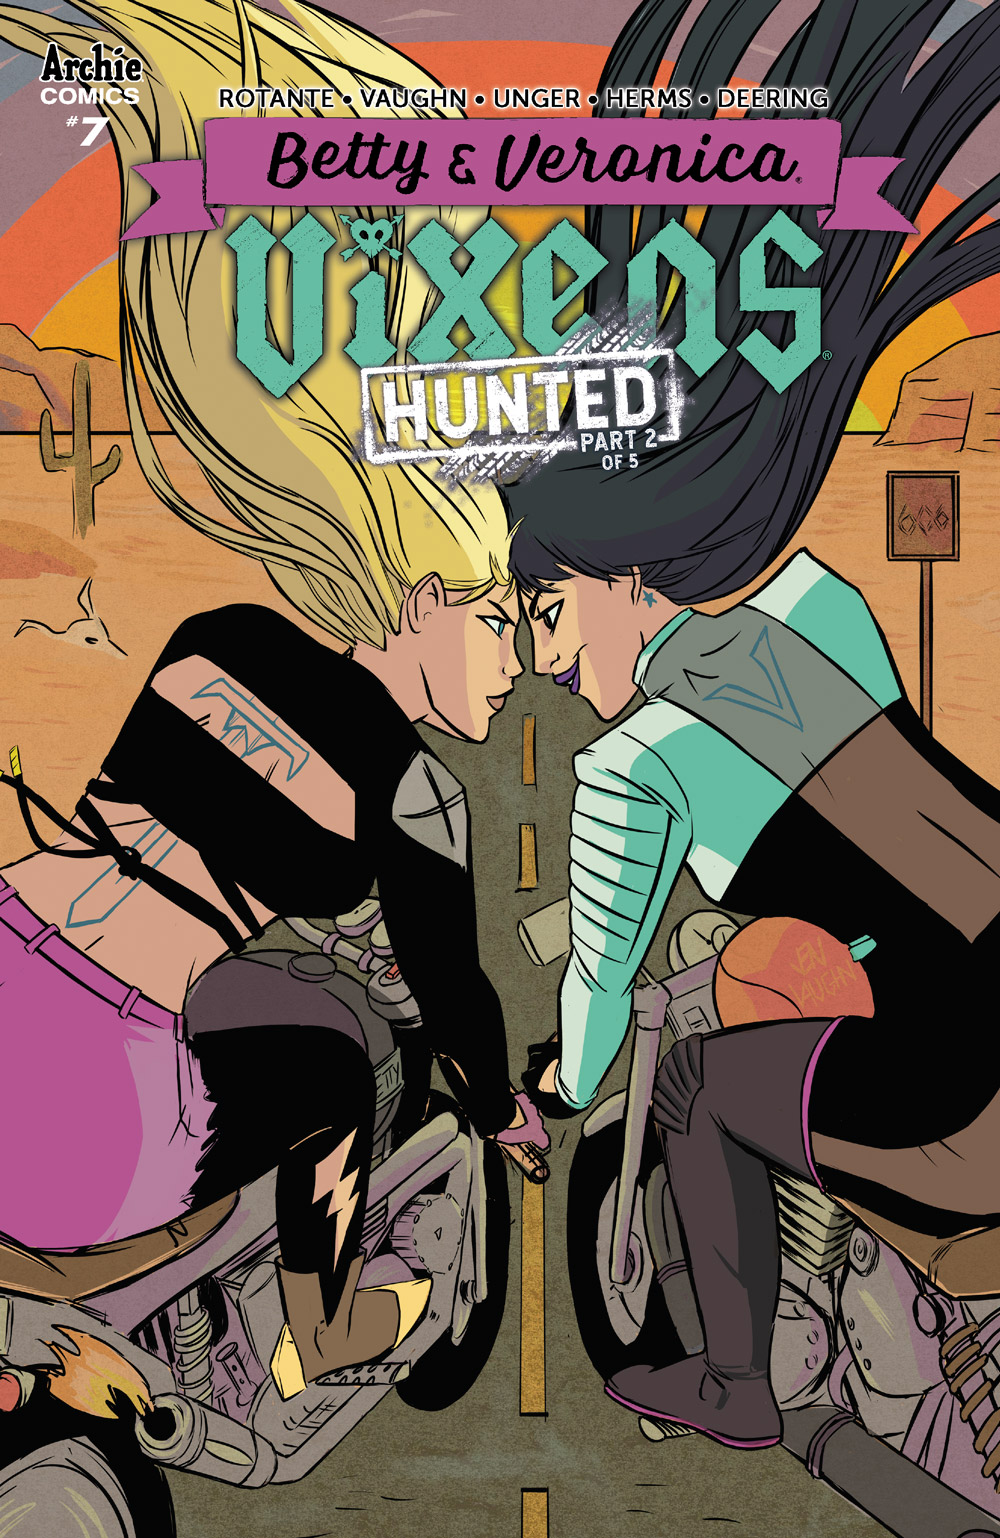 BETTY & VERONICA: VIXENS #7